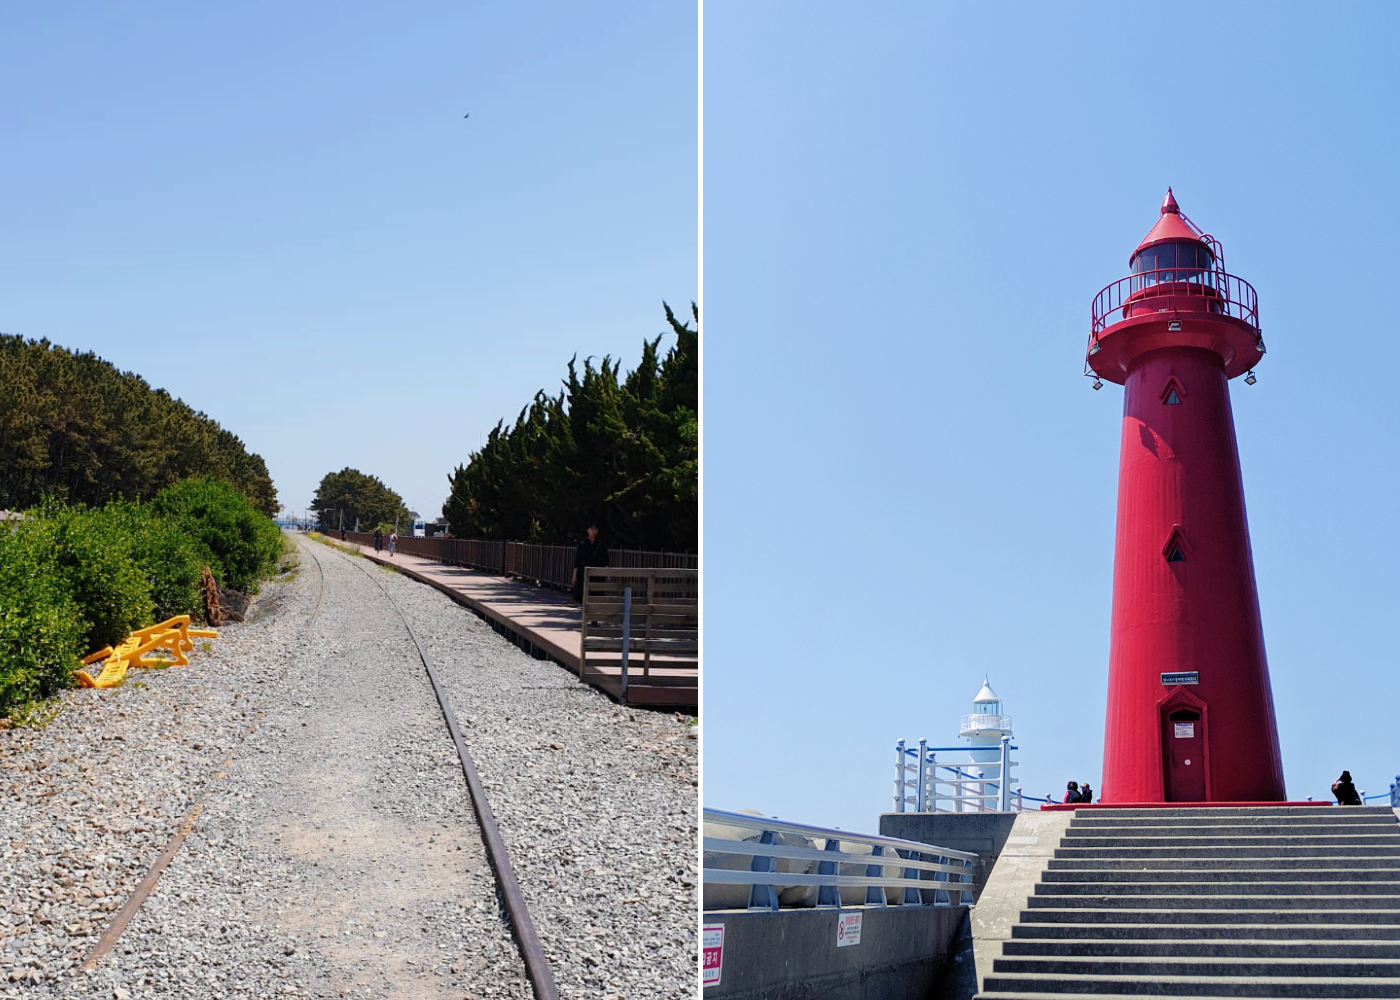 Left: The old railway, right: Cheongsapo lighthouses.